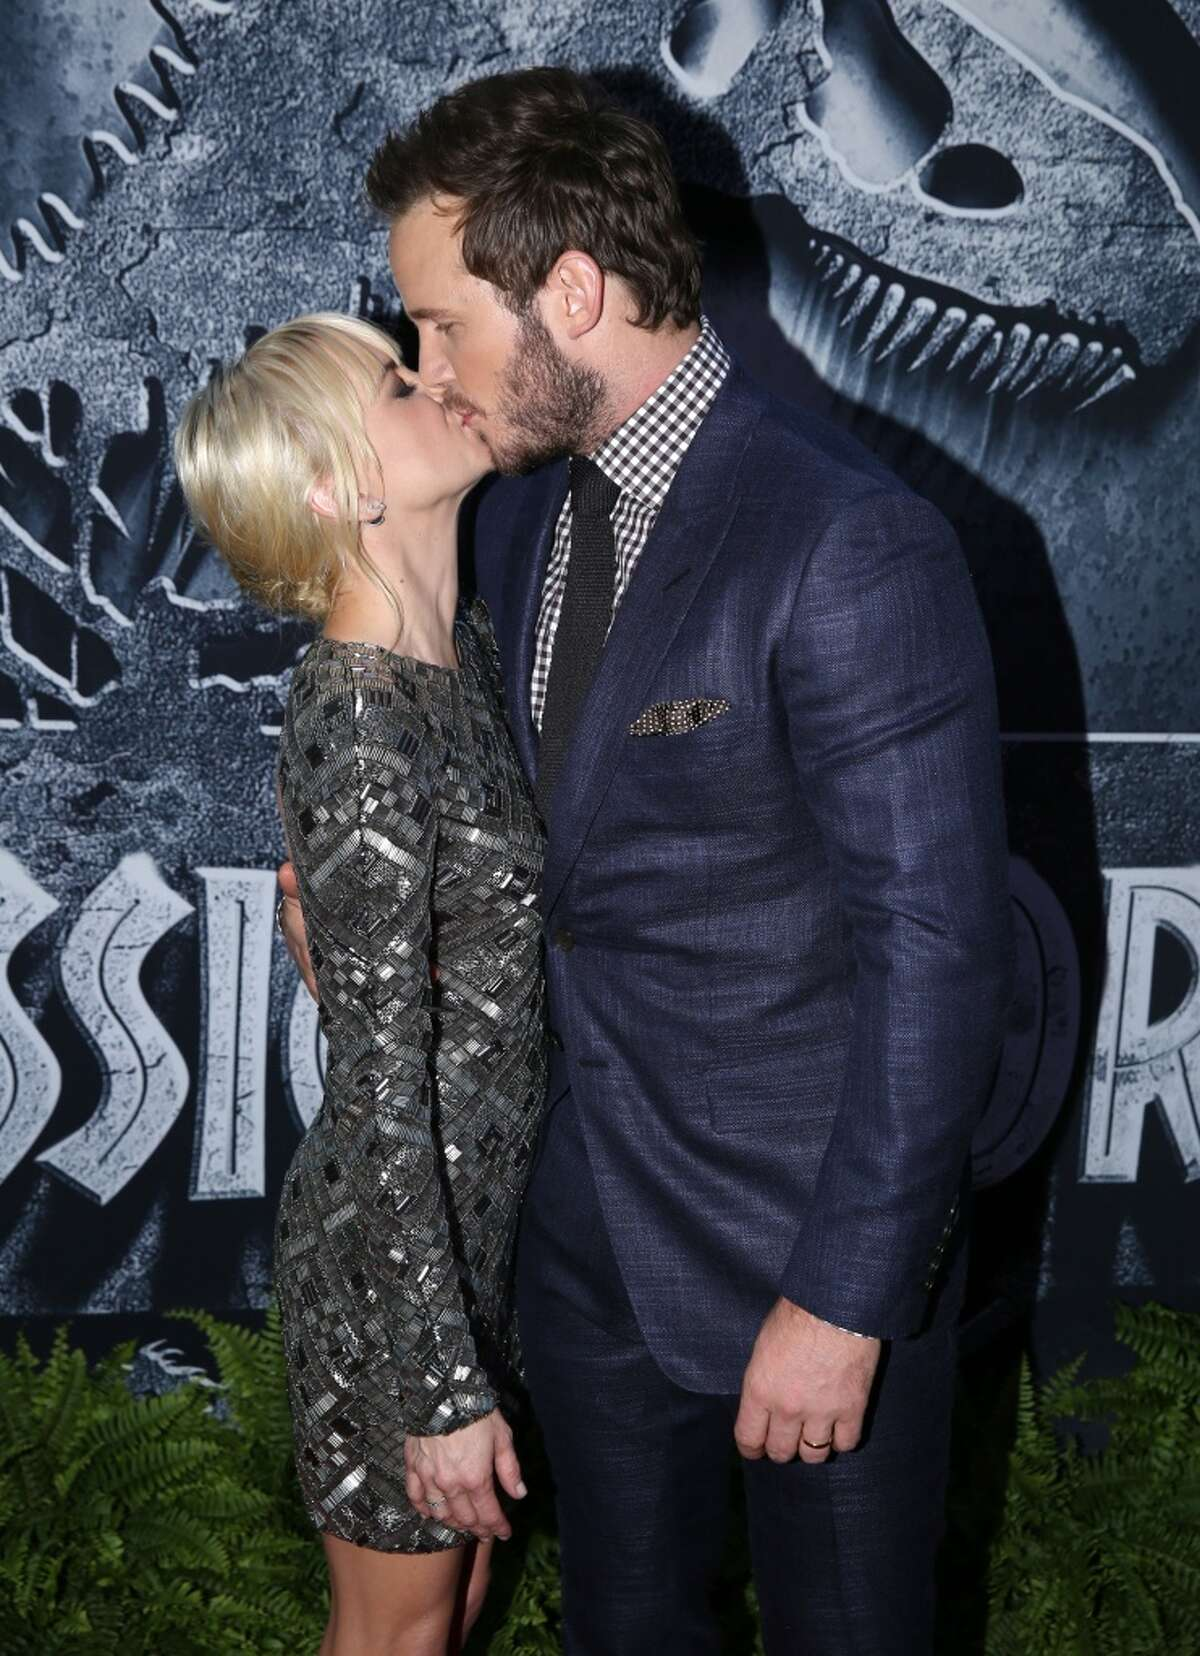 Chris Pratt, raised in Lake Stevens, kisses wife Anna Faris at the Los Angeles premiere of